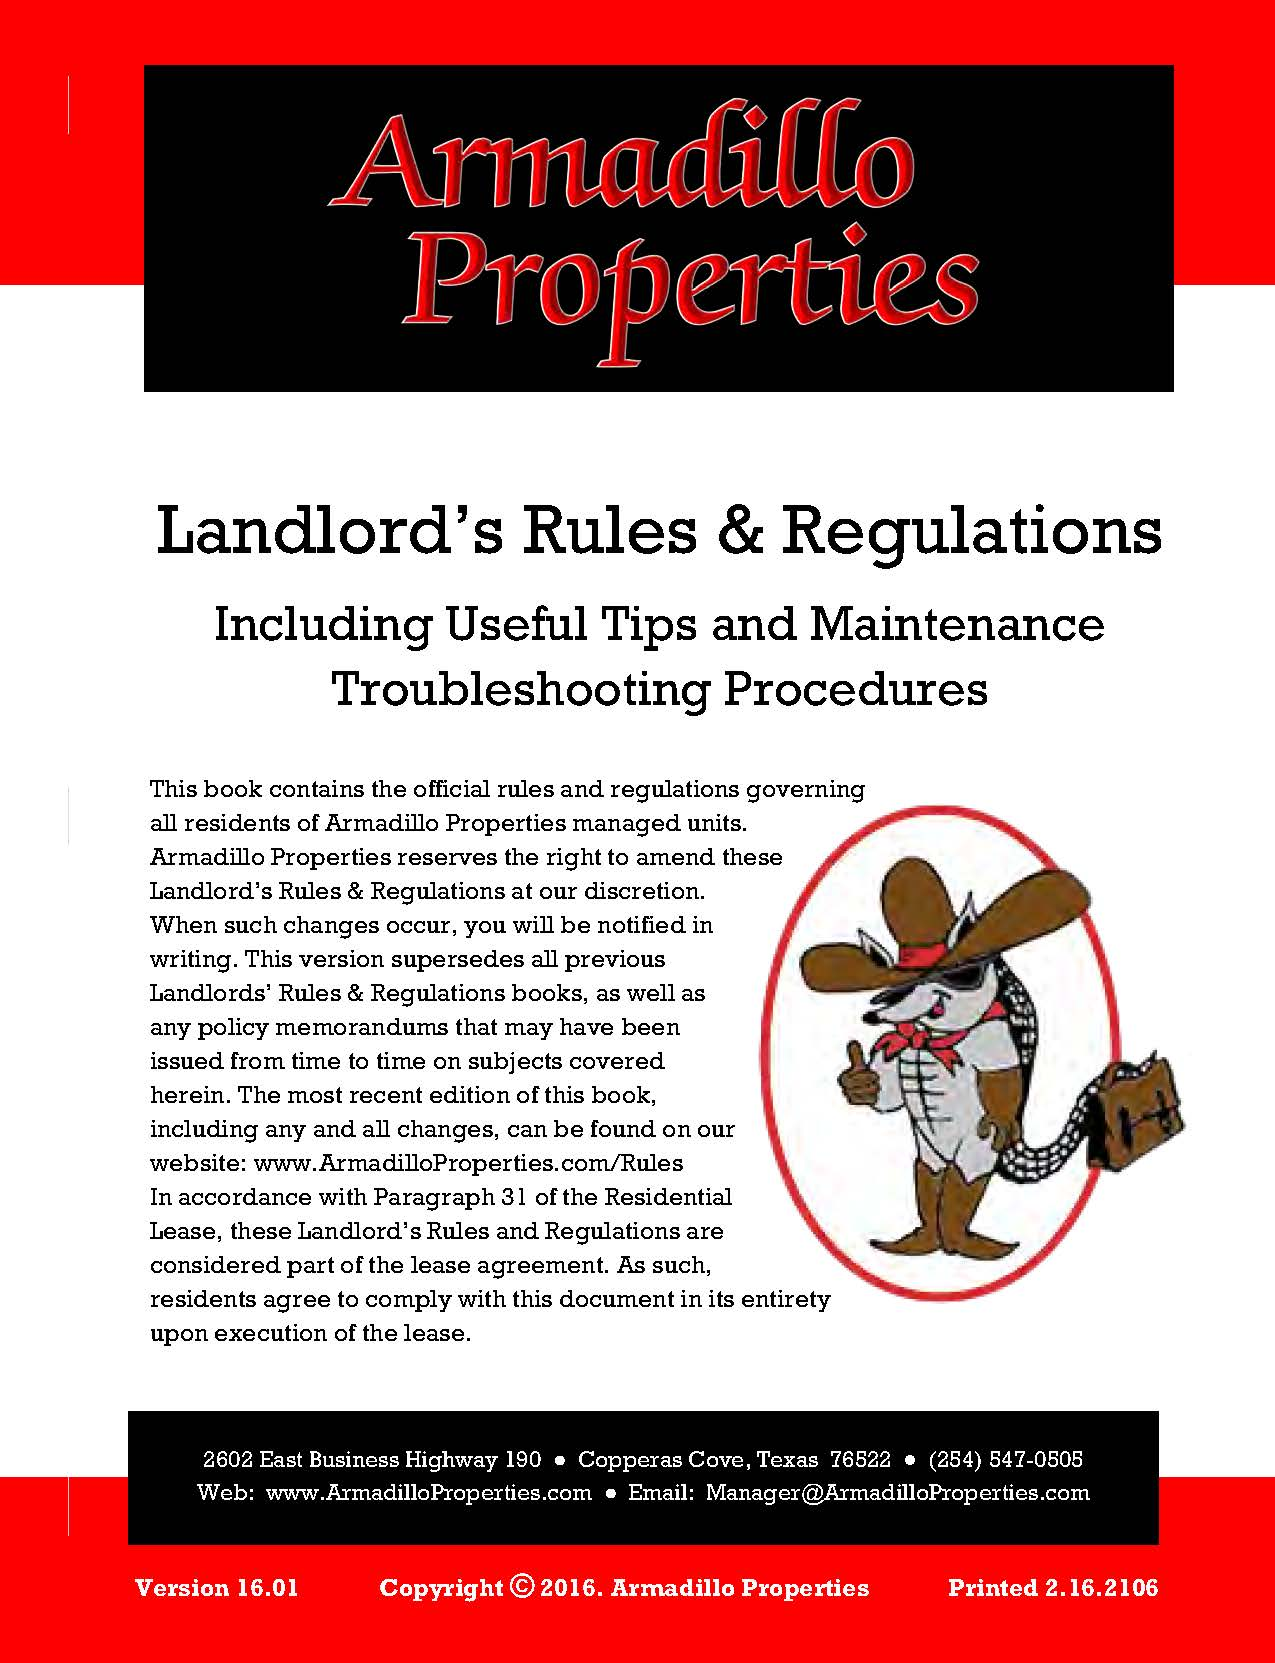 Landlord's Rules and Regulatiosn Link